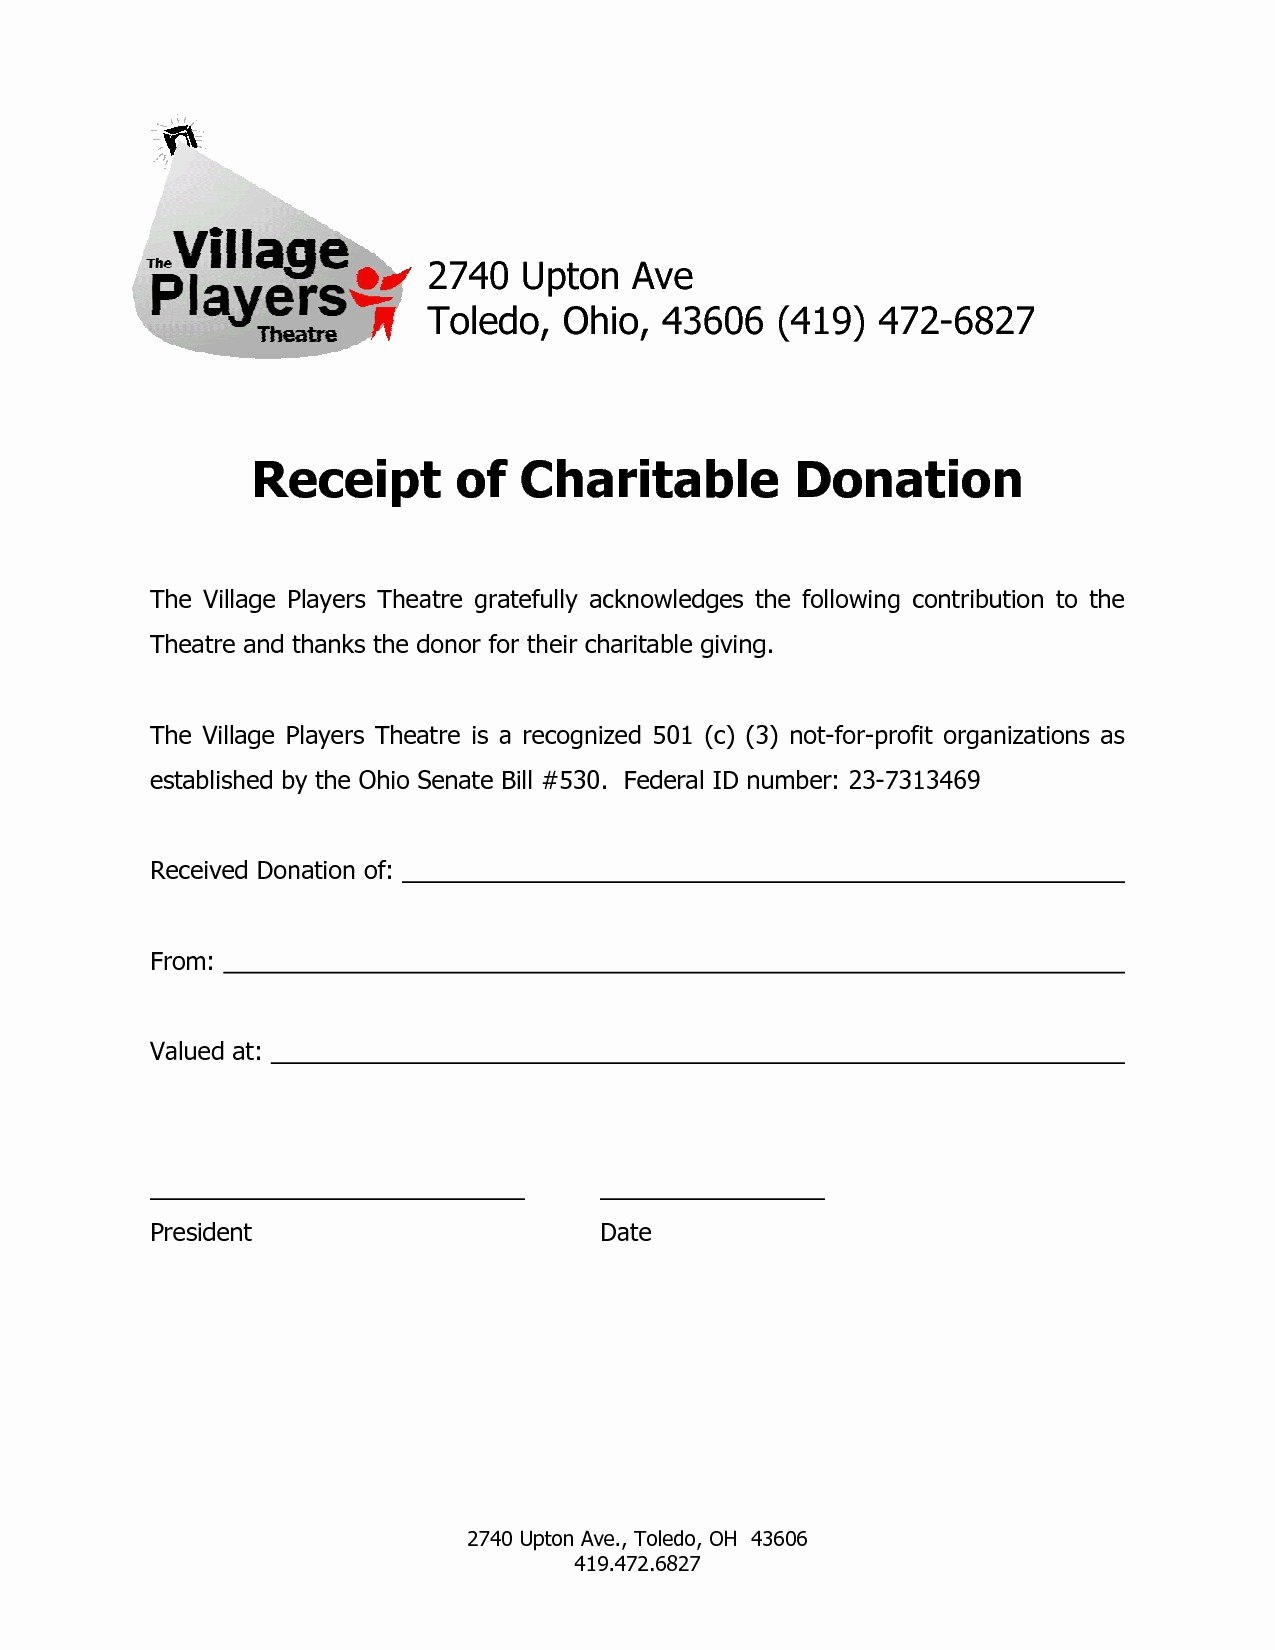 Charitable Donation Letter Template Best Of Charitable Donation Receipt Letter Template Sample